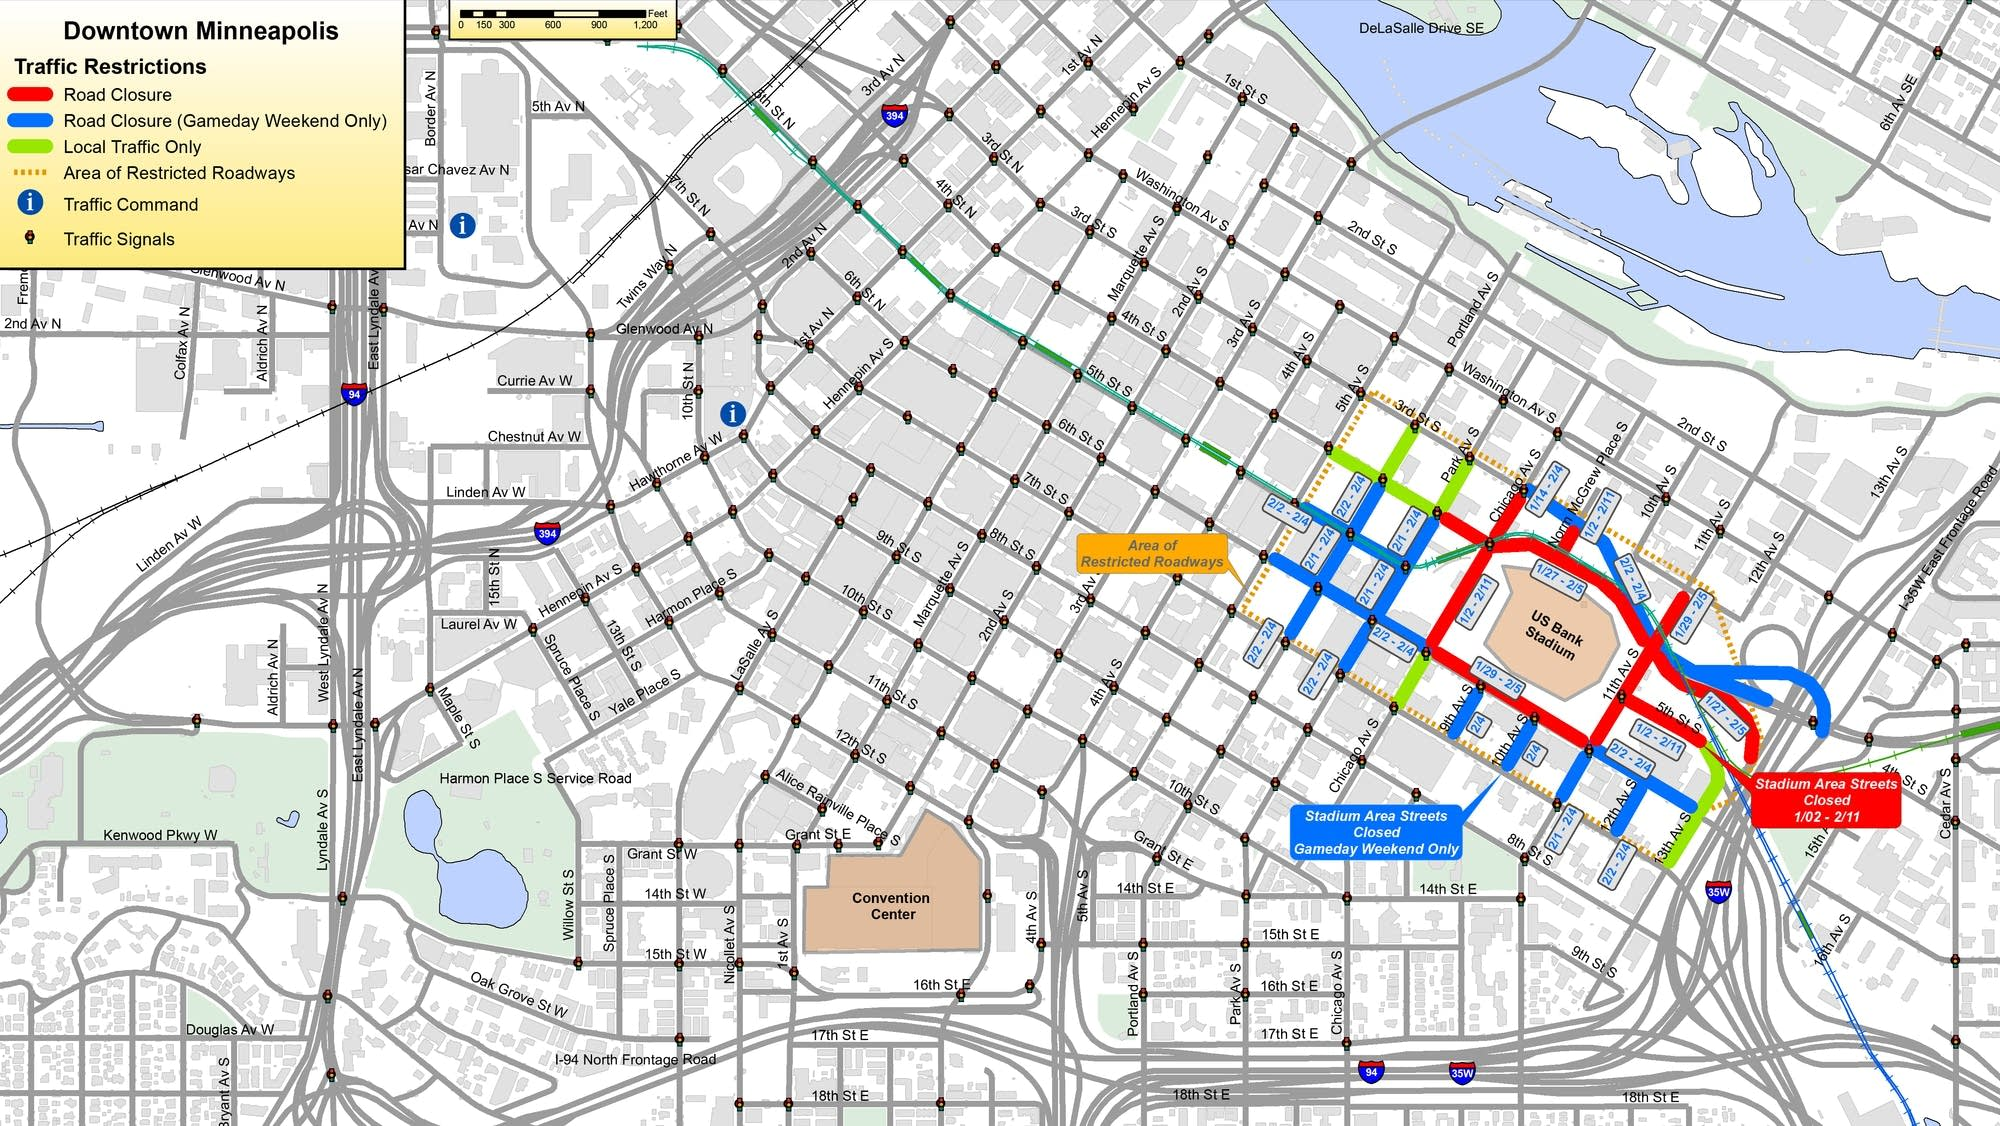 Super Bowl road closures have begun in Minneapolis.